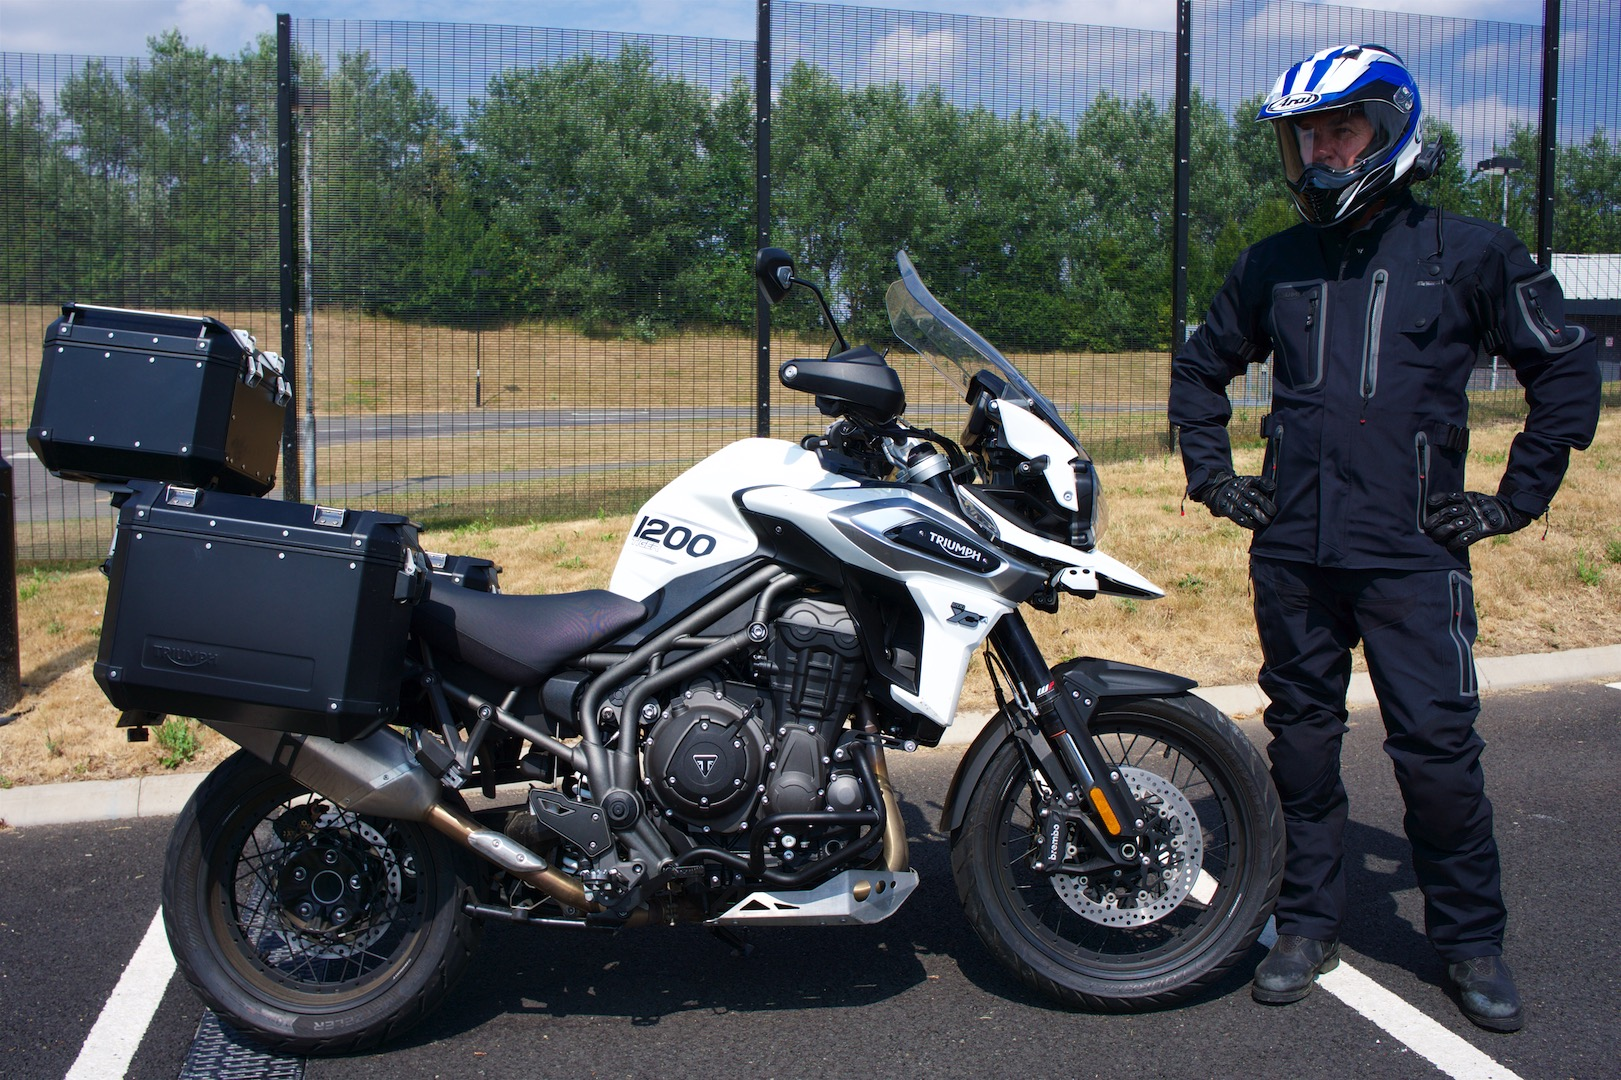 2018 Triumph Tiger 1200 Xca And 800 Xrx Review Touring Wales